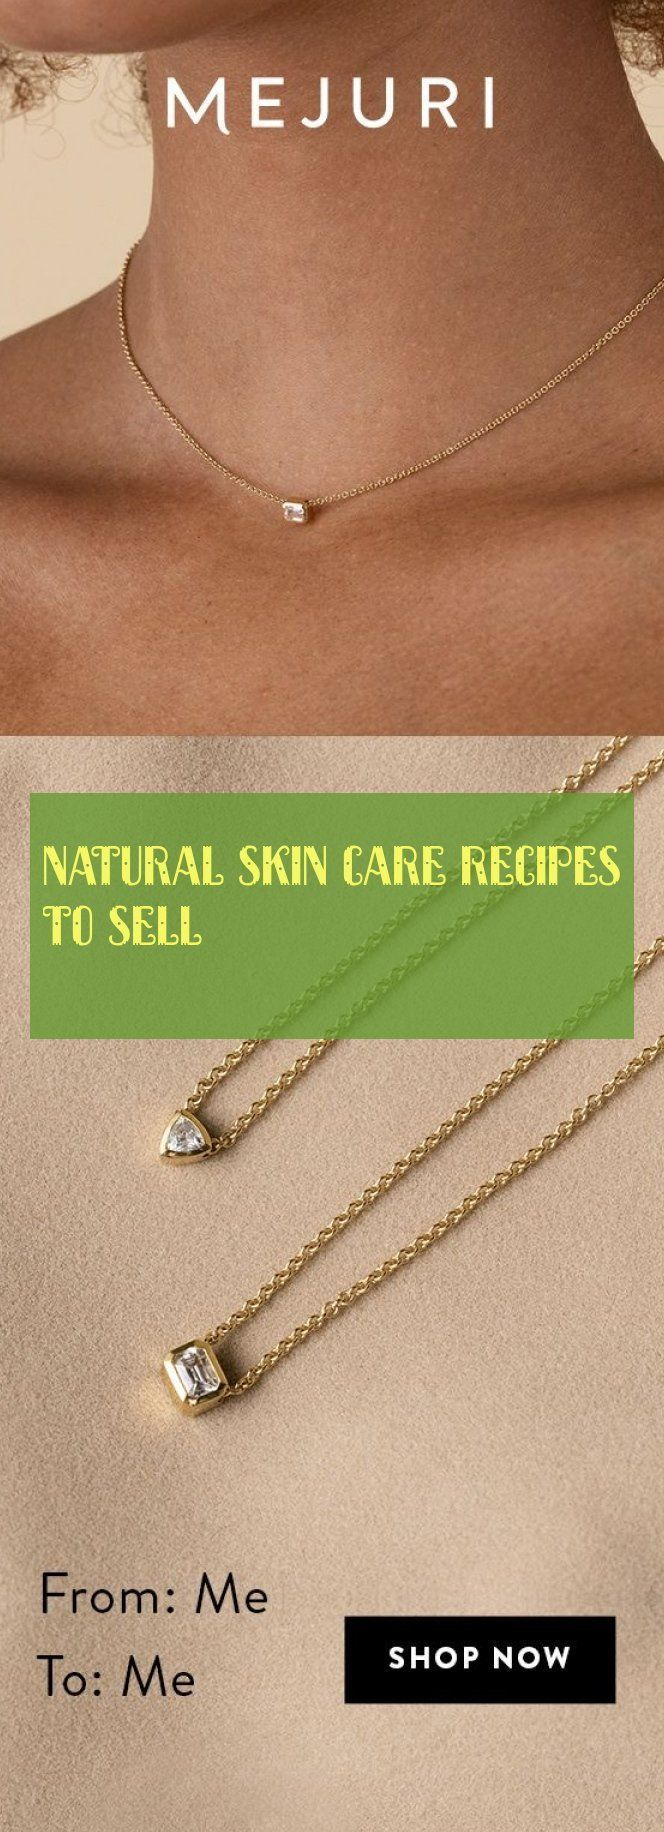 natural skin care recipes to sell - natural skin care recipes for sale ...  -  Hautpflege-Rezepte